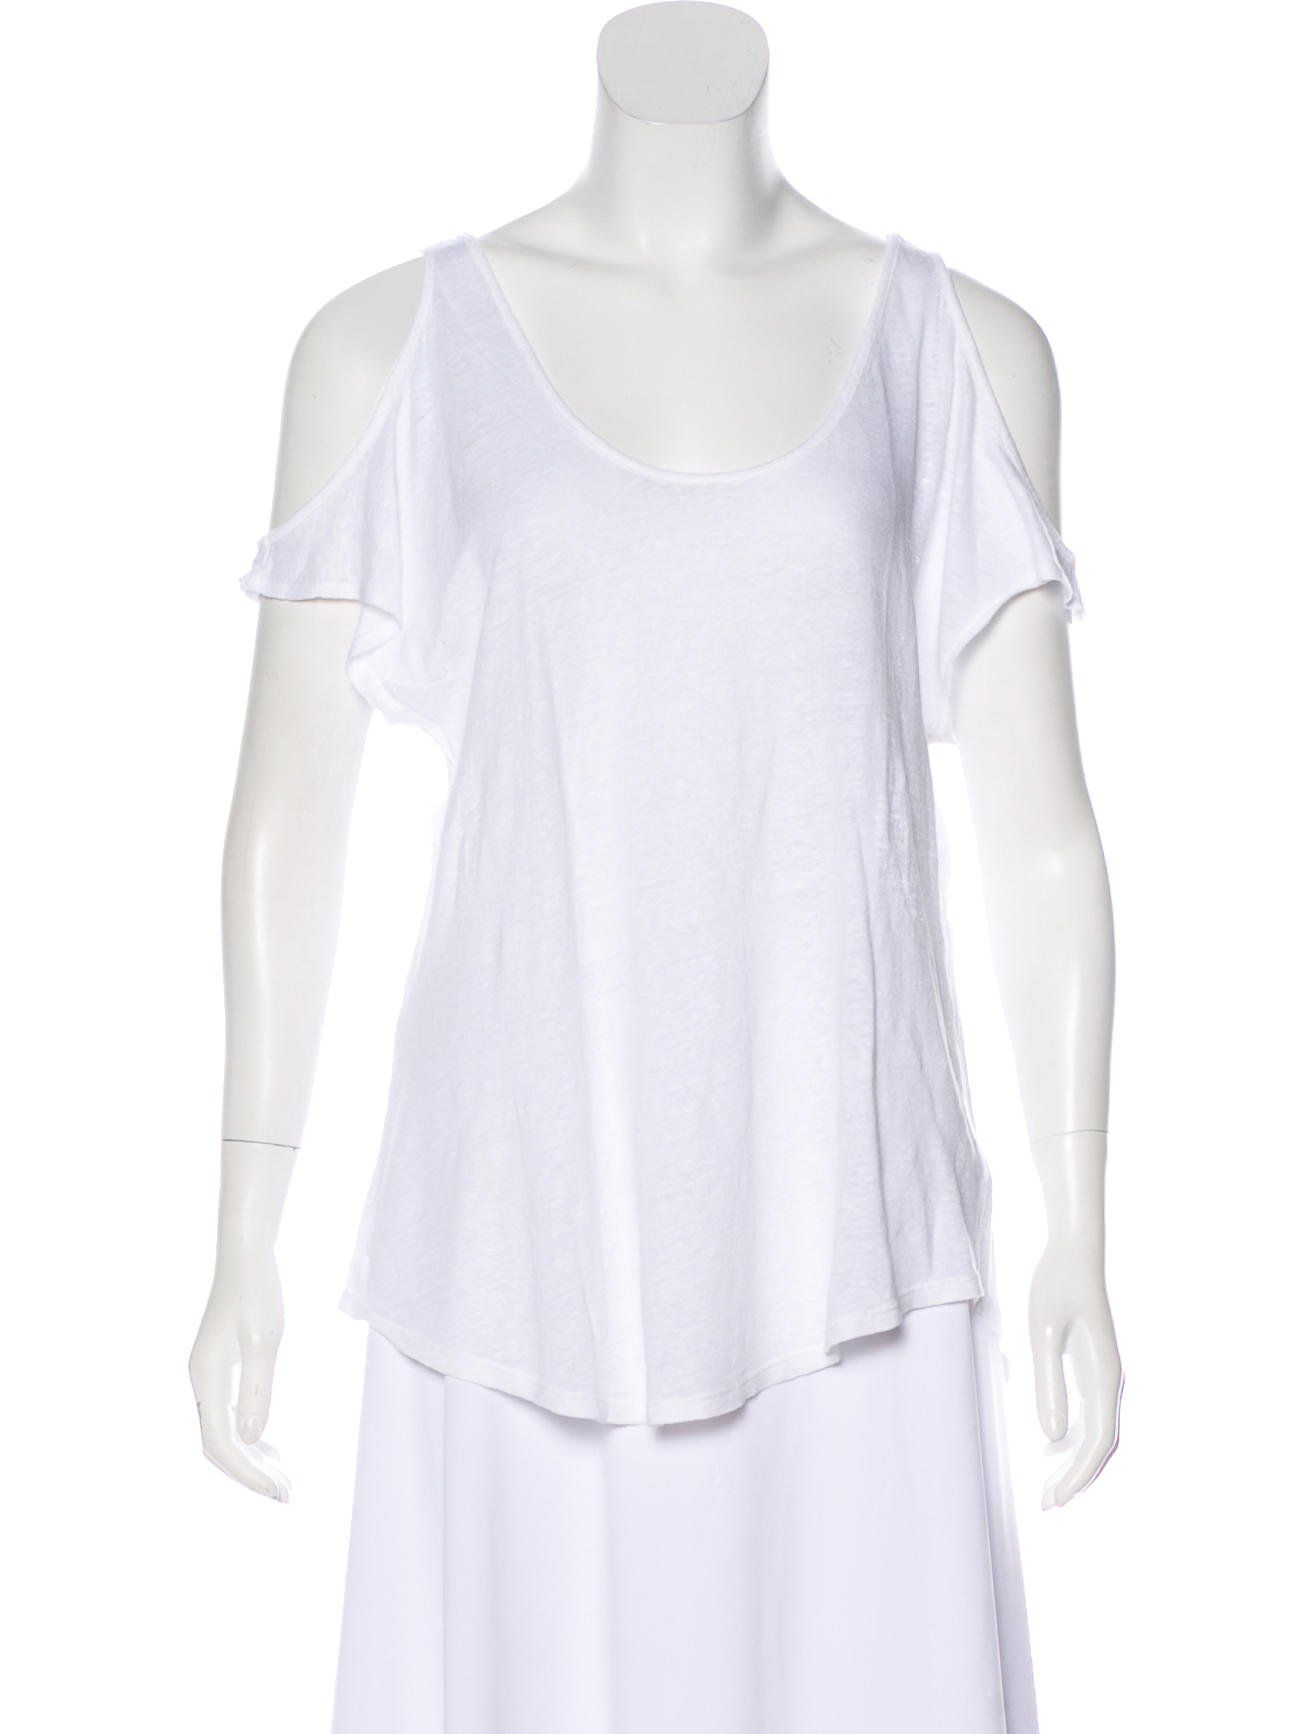 Linen Cold Shoulder Top Tops Fashion Tunic Tops